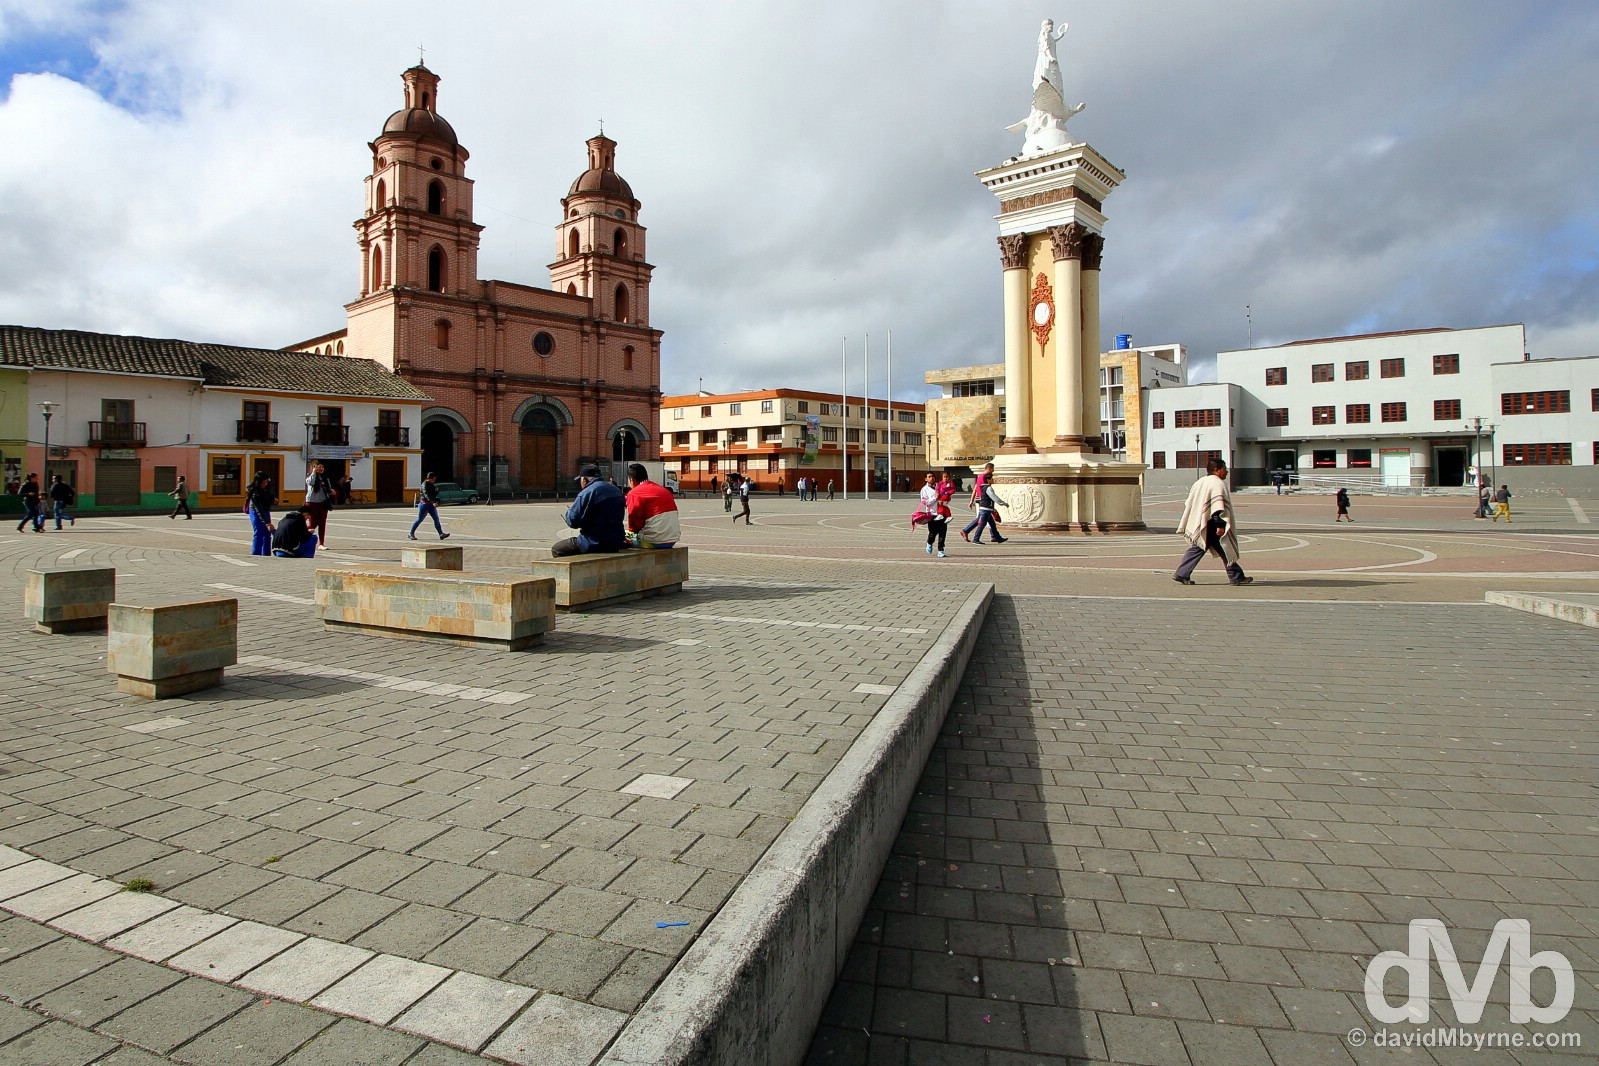 Plaza Ipiales in the border town of Ipiales, southern Colombia. July 2, 2015.